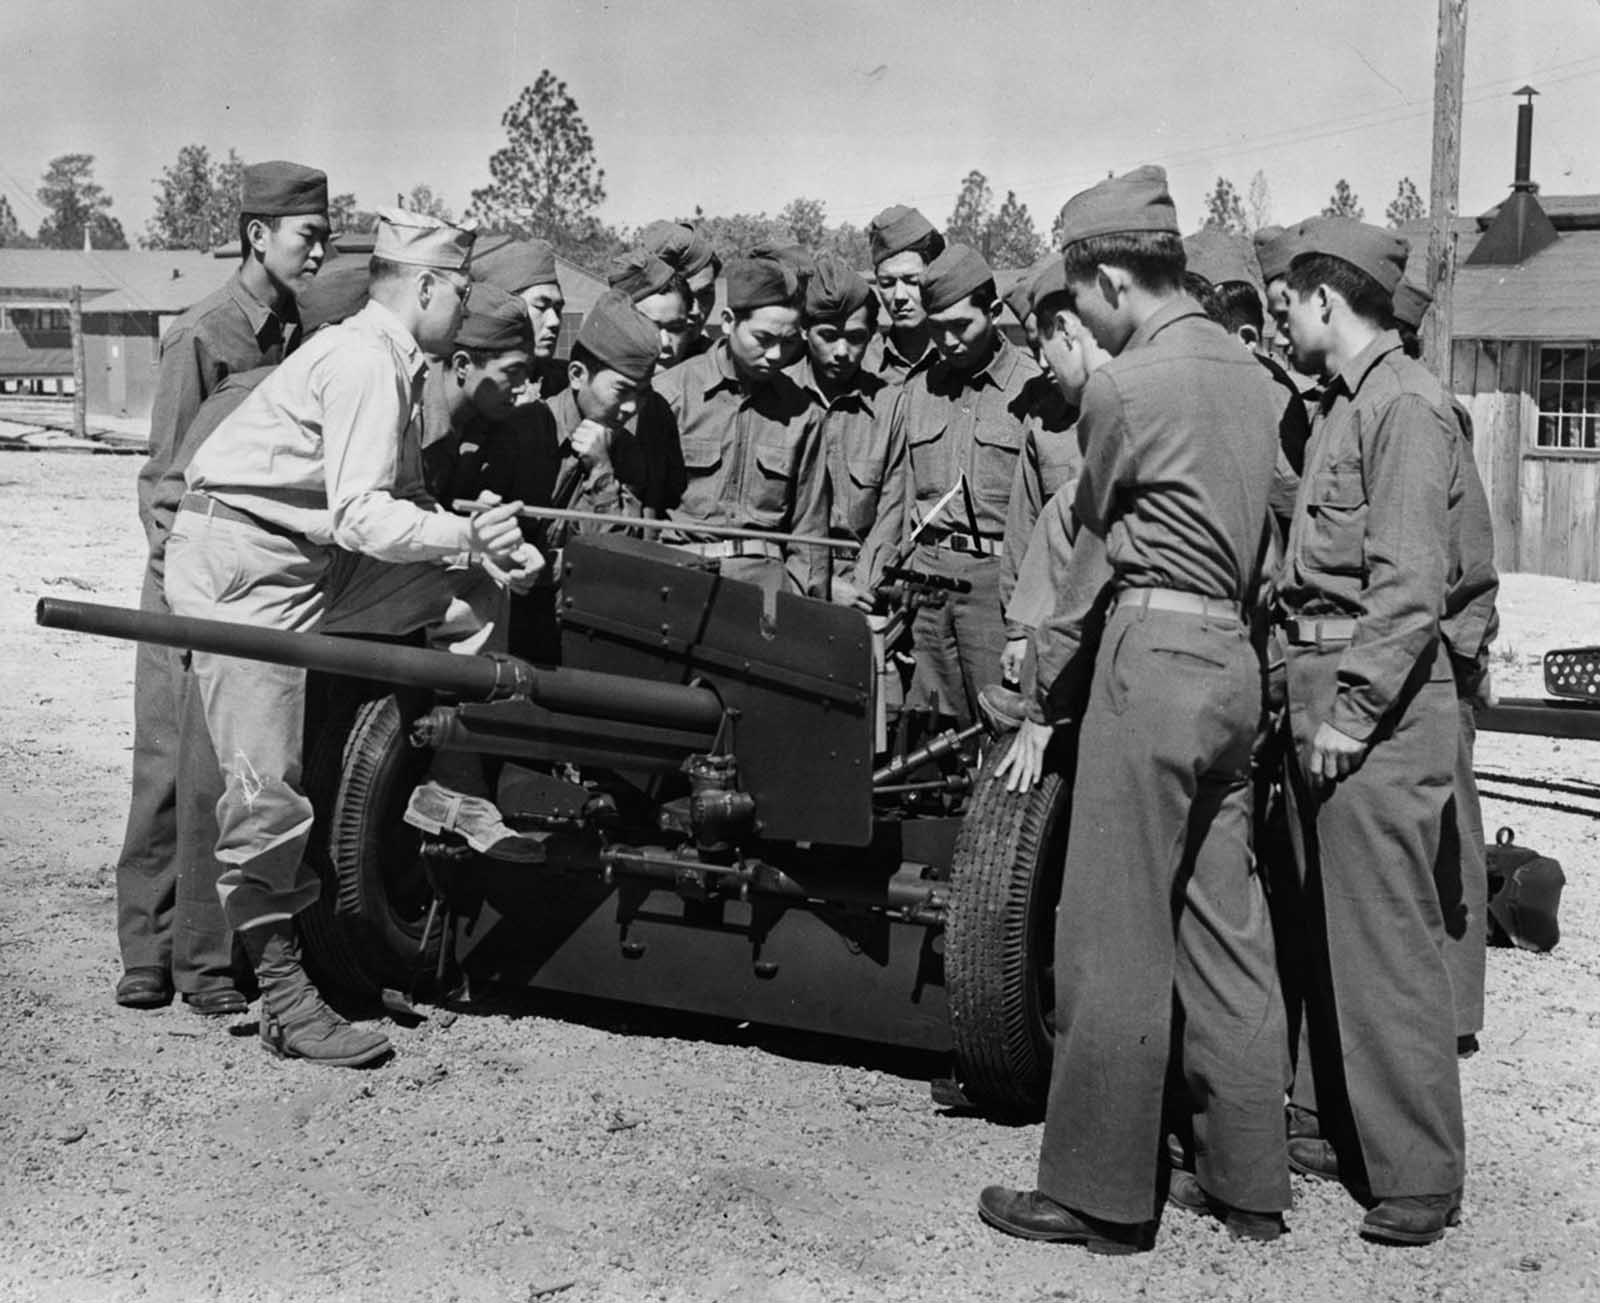 Soldiers receive training on heavy weaponry. 1943.